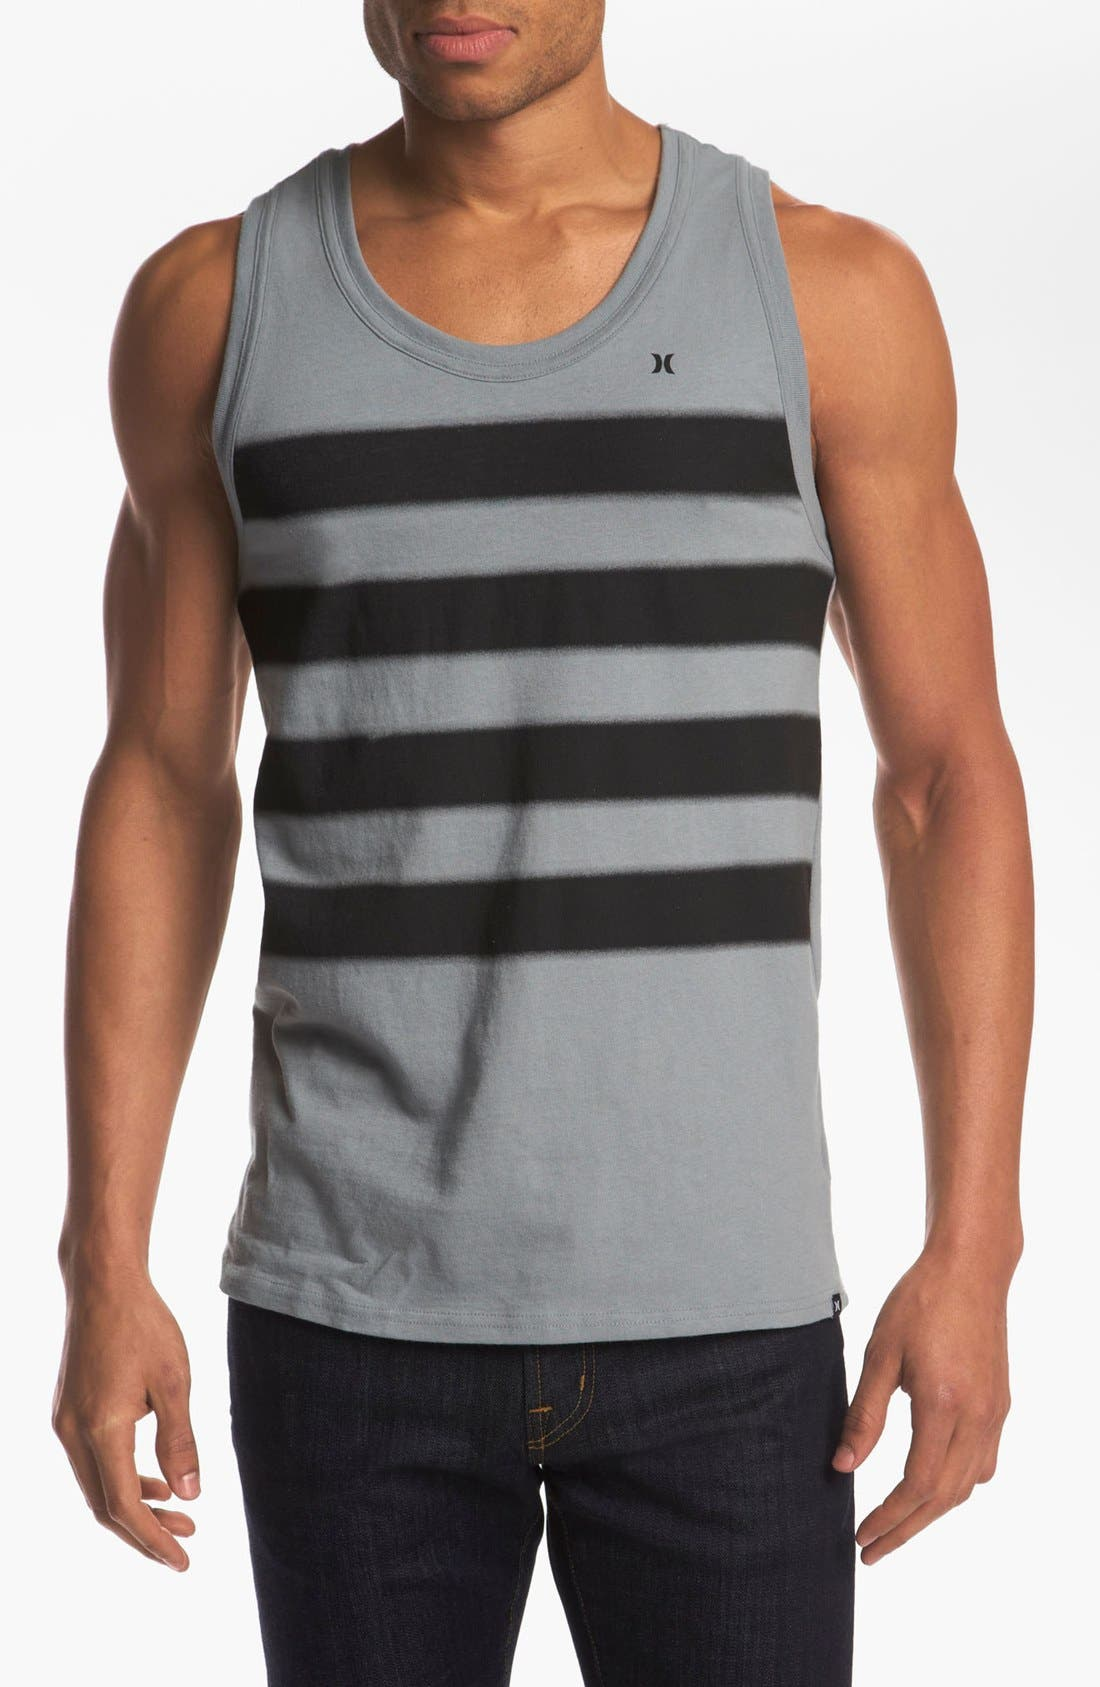 Alternate Image 1 Selected - Hurley 'Motion' Tank Top